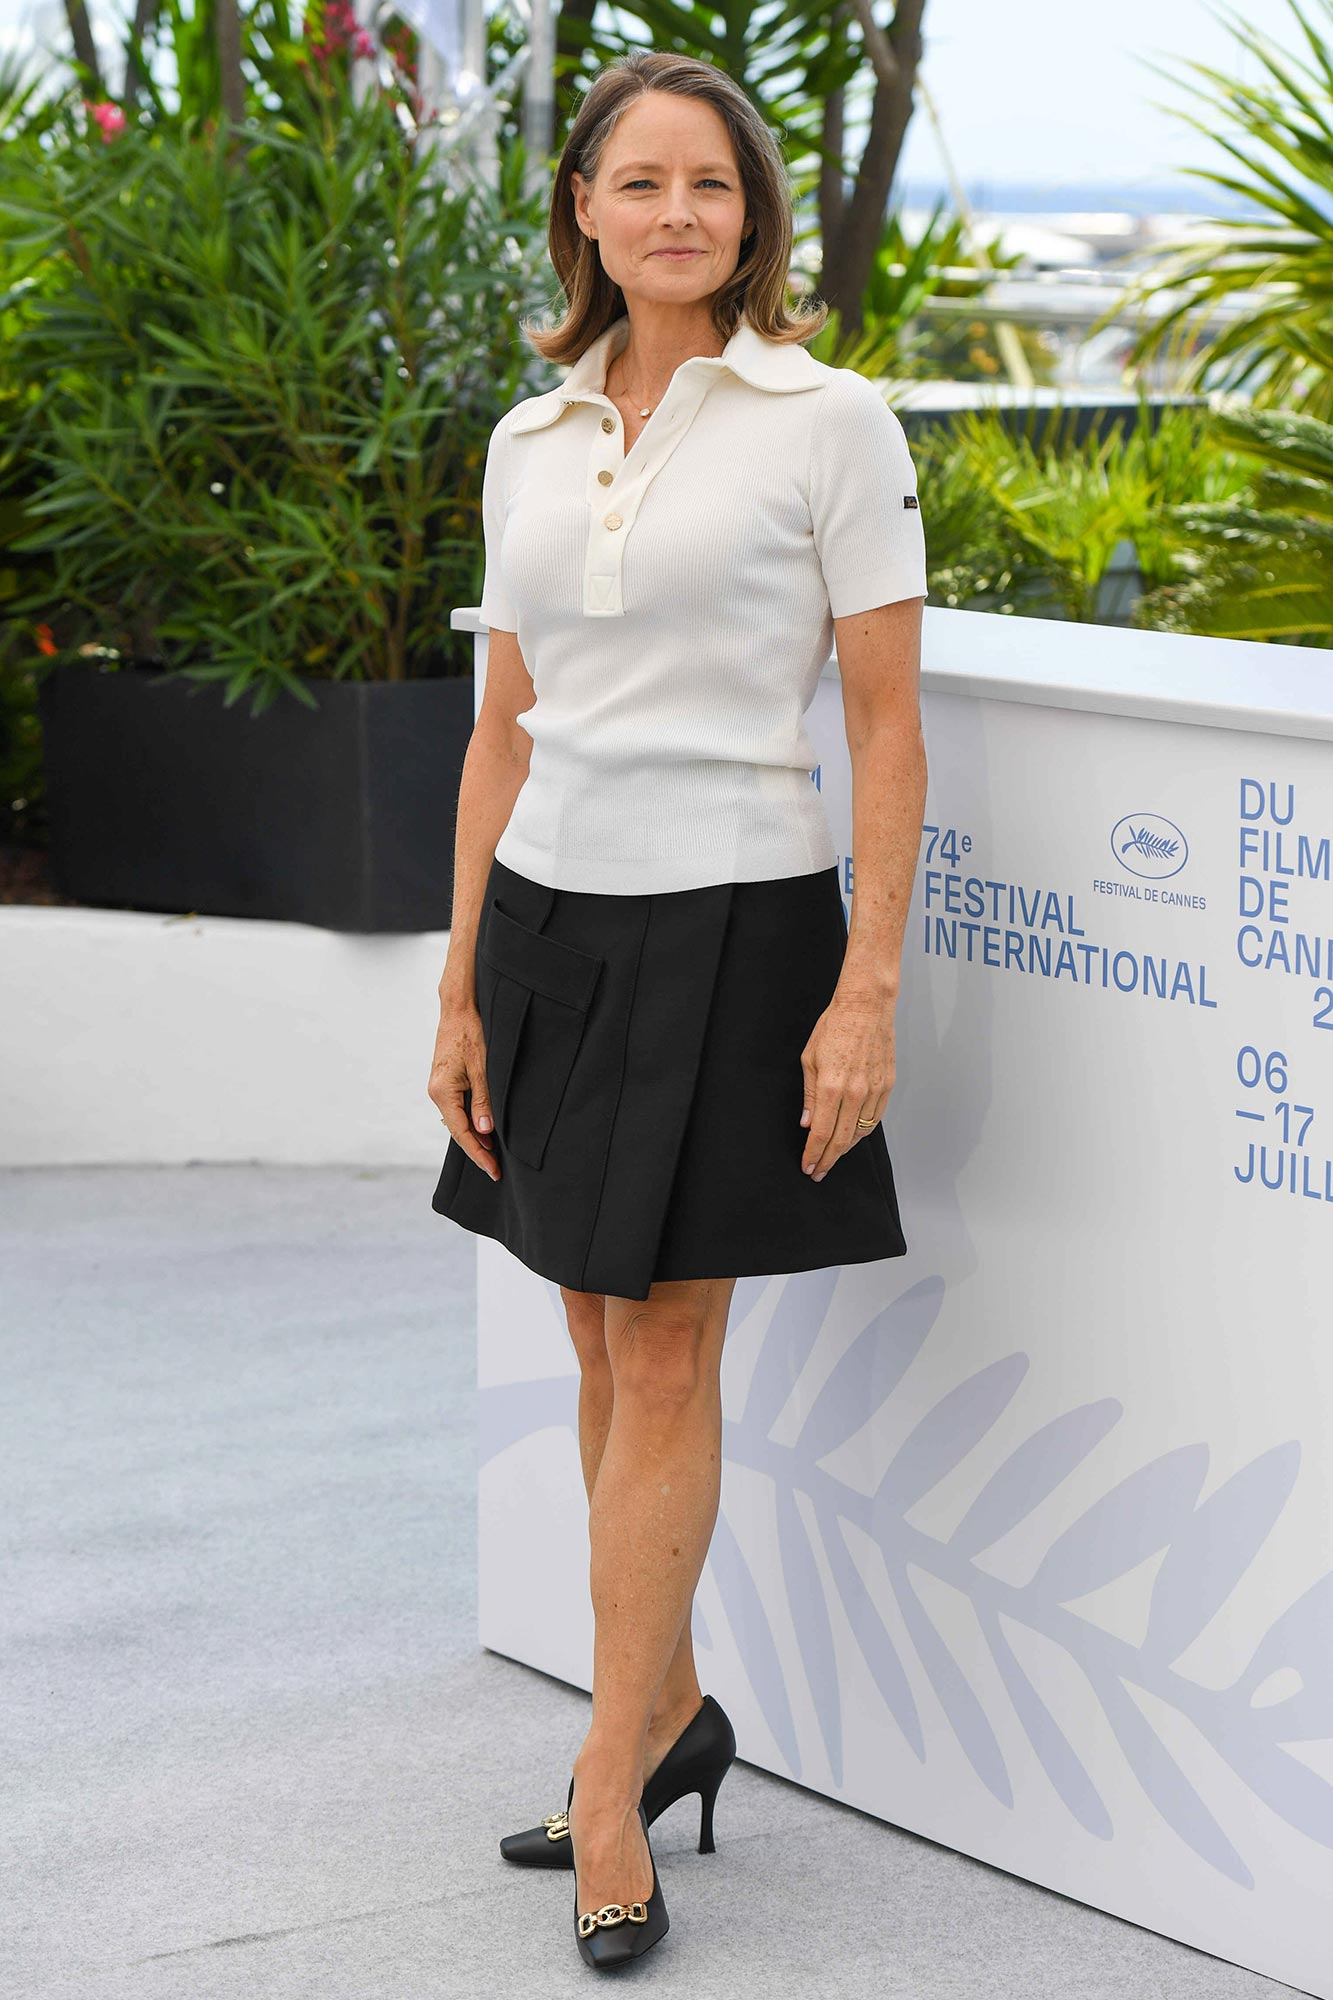 Cannes 2021 Red Carpet - Jodie Foster